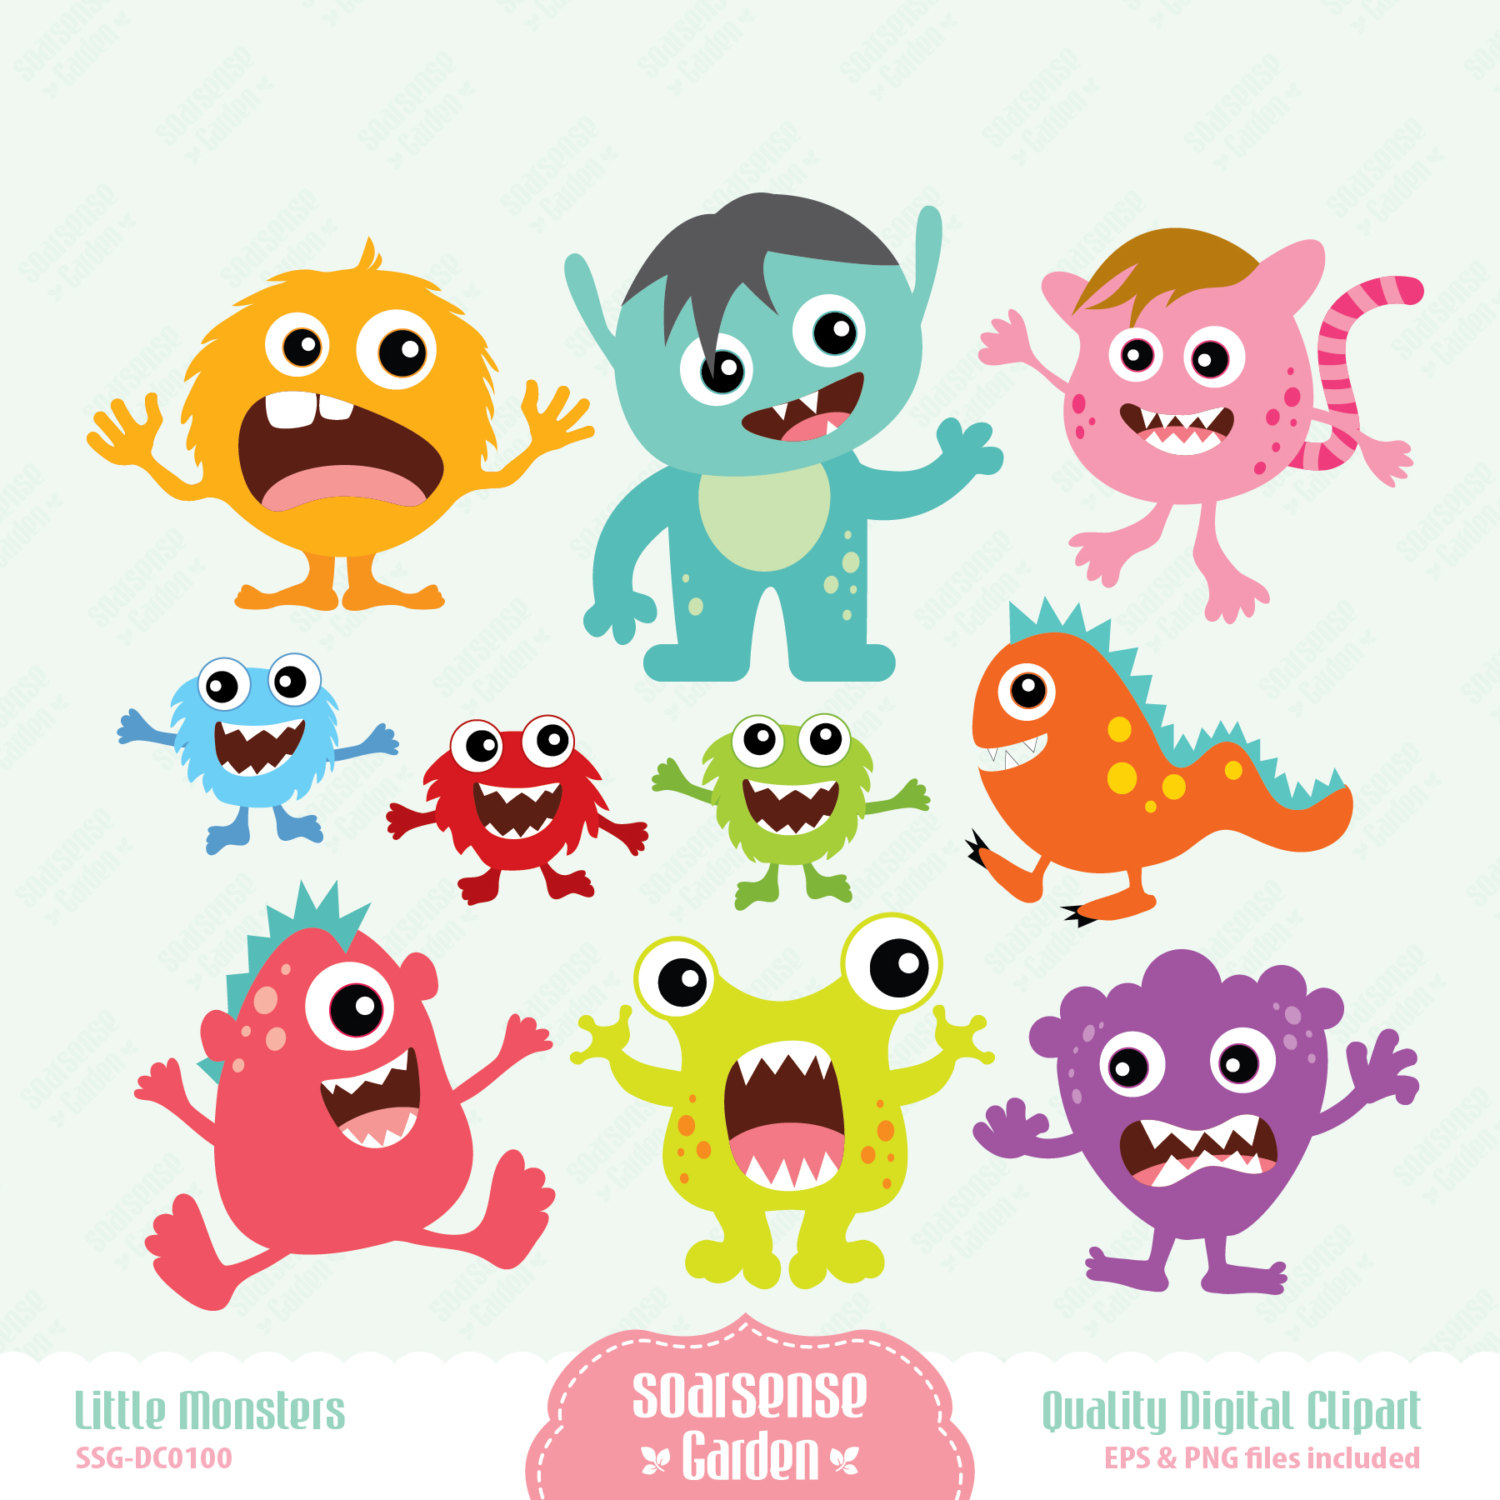 Little Monsters Digital Clipart February 03 2014 At 08 25pm